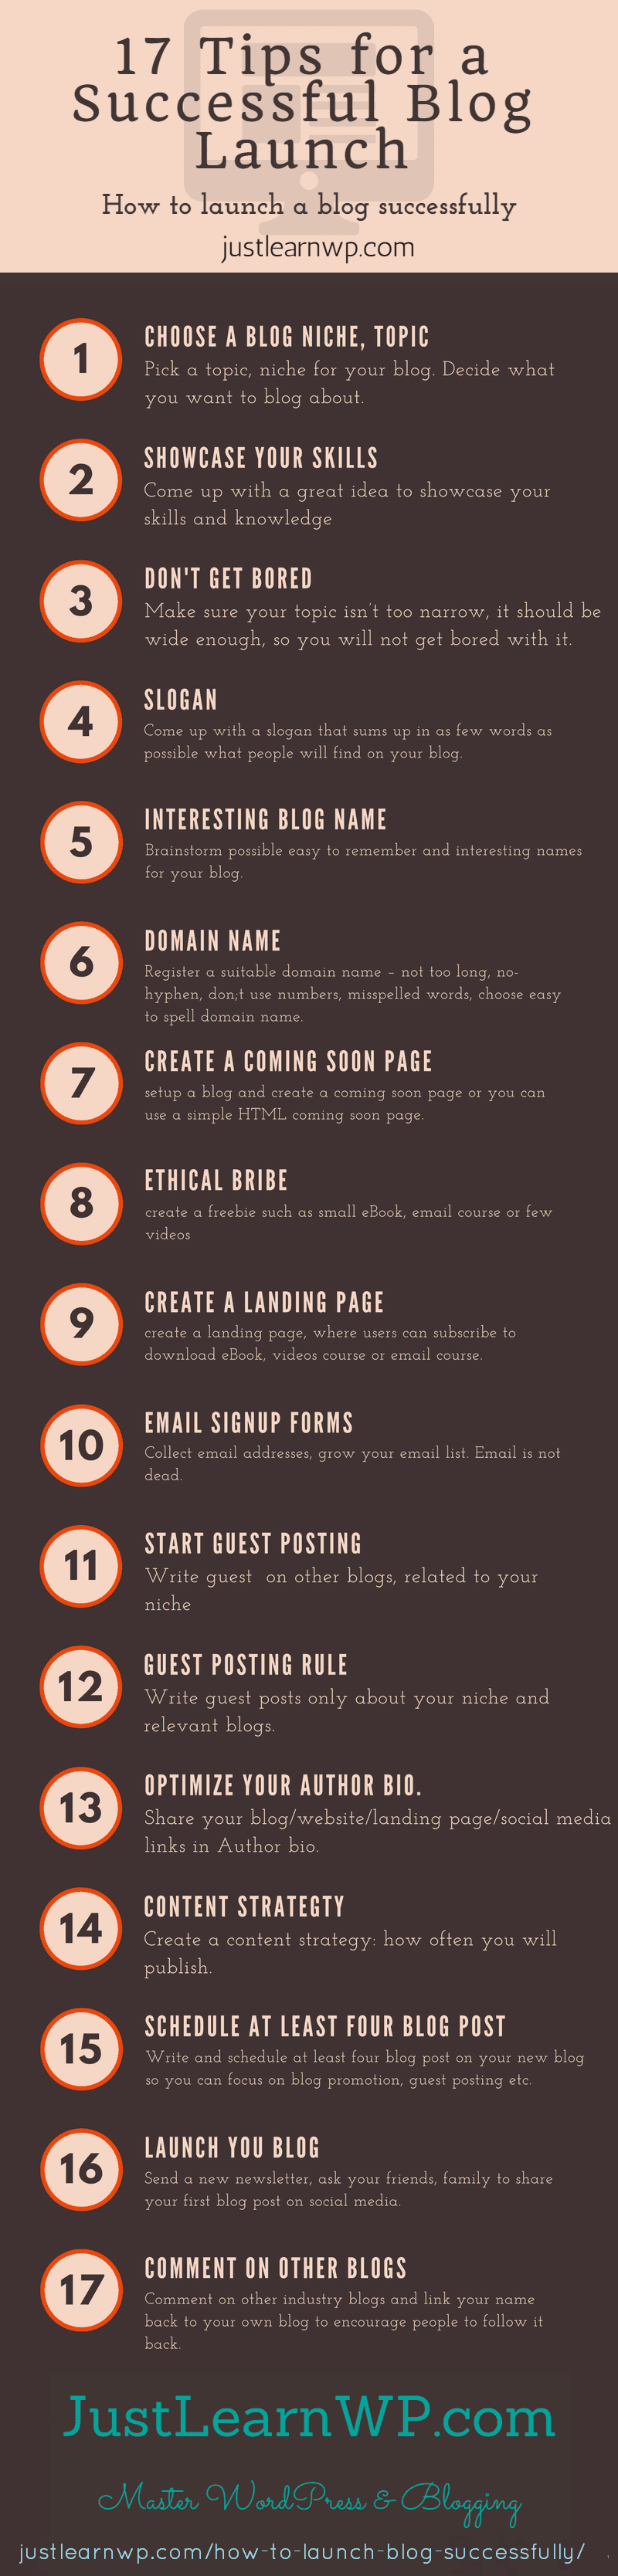 How To Launch Blog Successfully